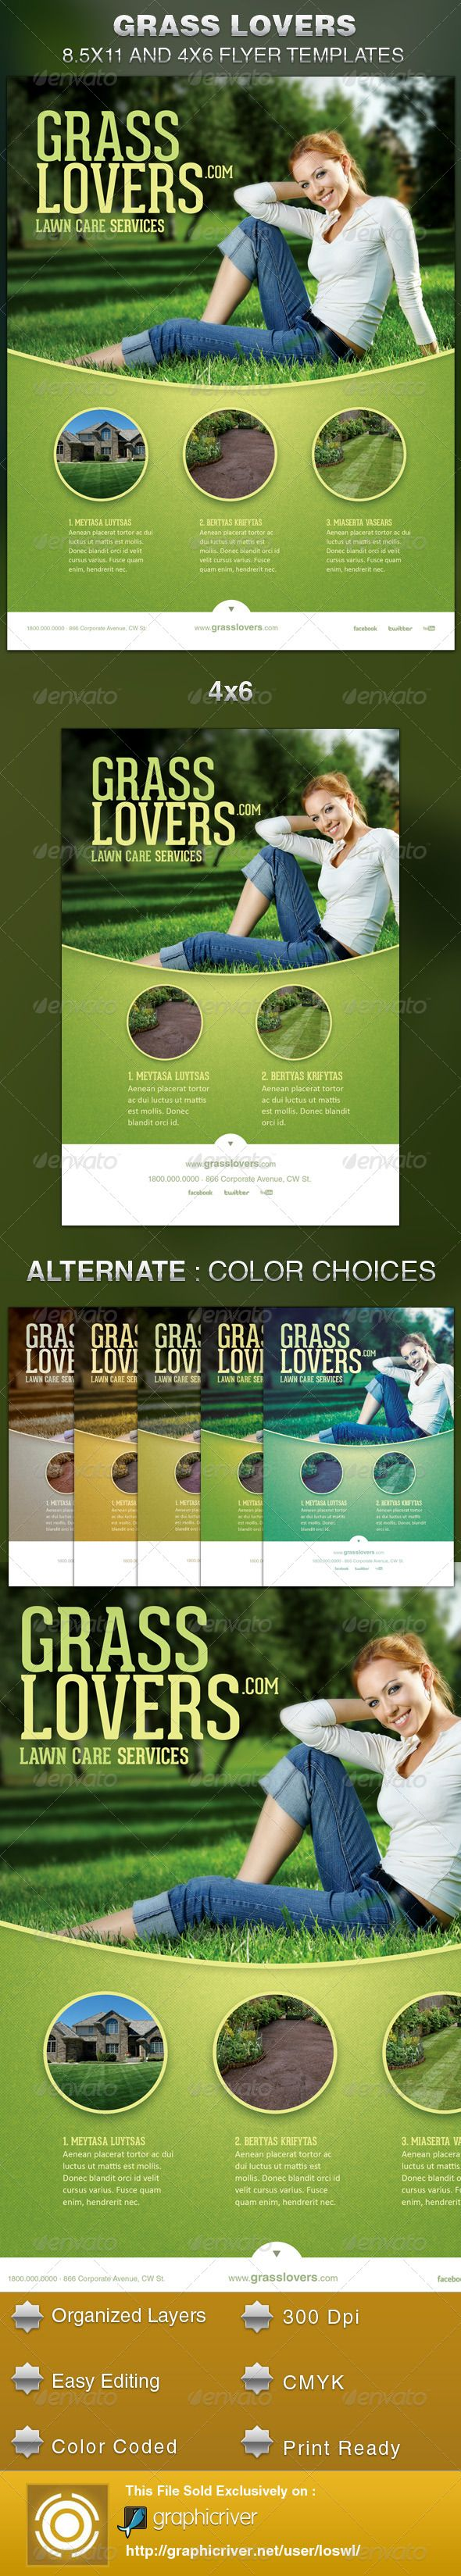 best images about golf project email marketing grass lovers corporate flyer template